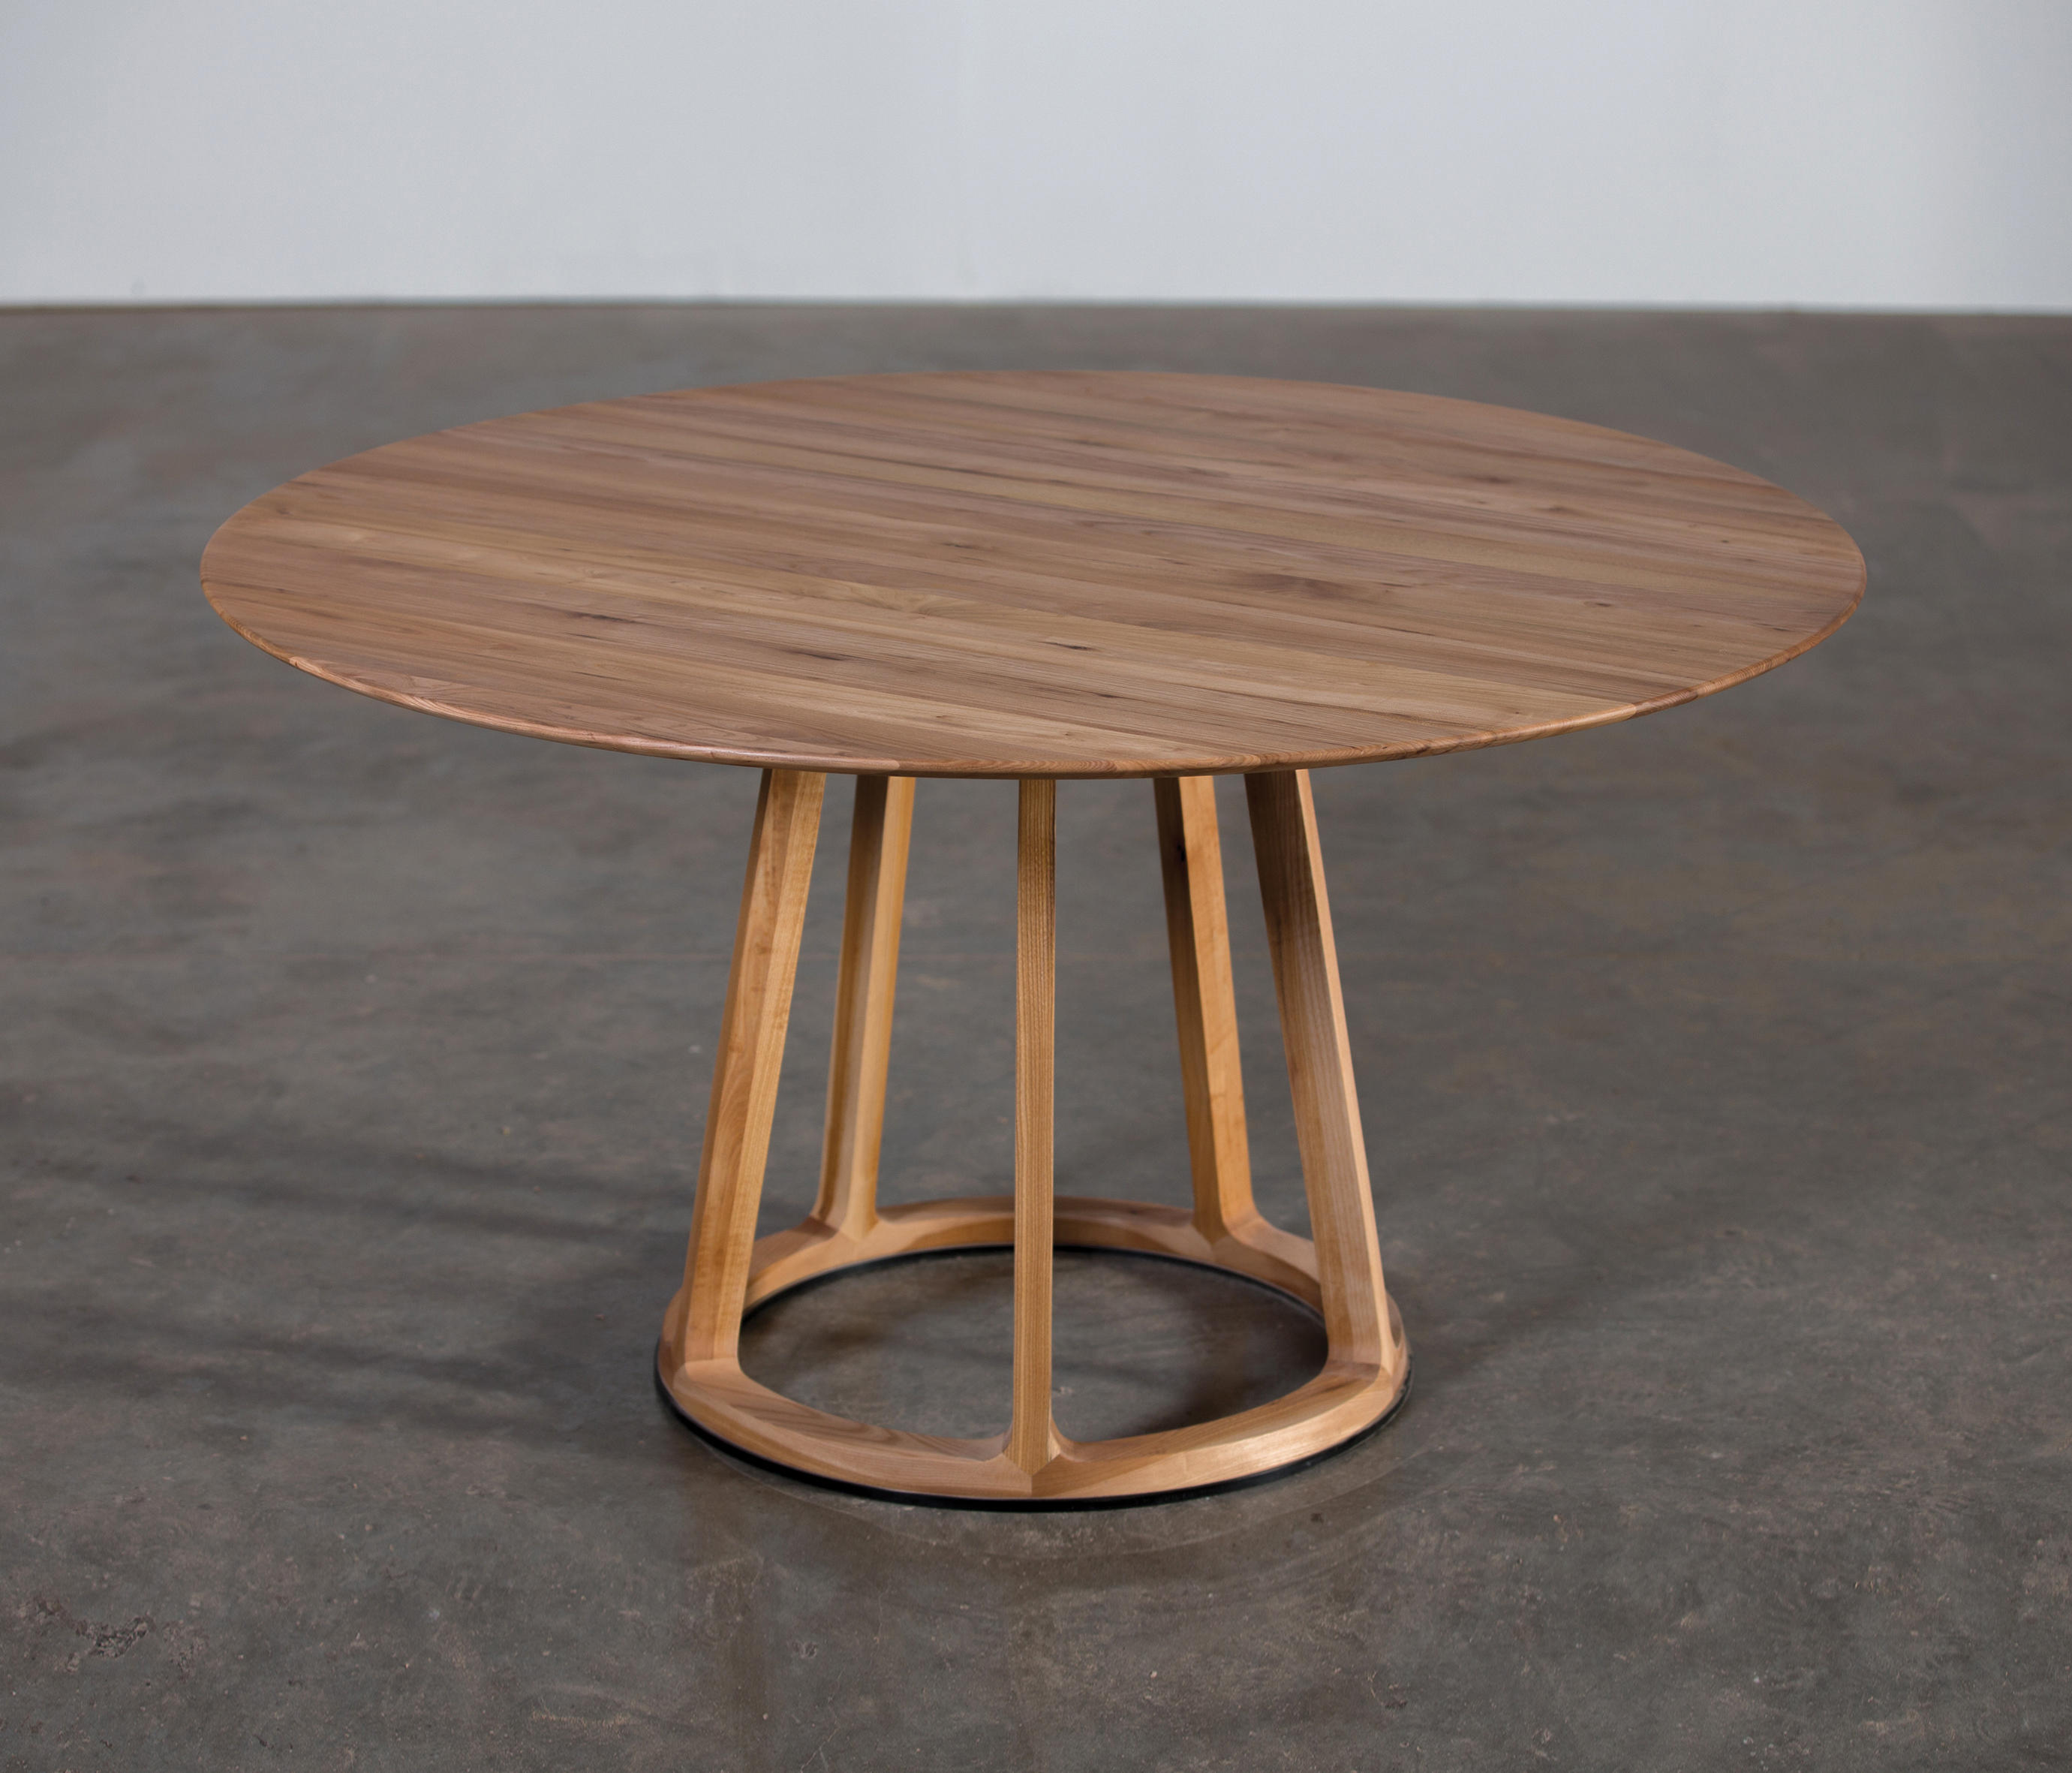 PIVOT TABLE Restaurant tables from Artisan